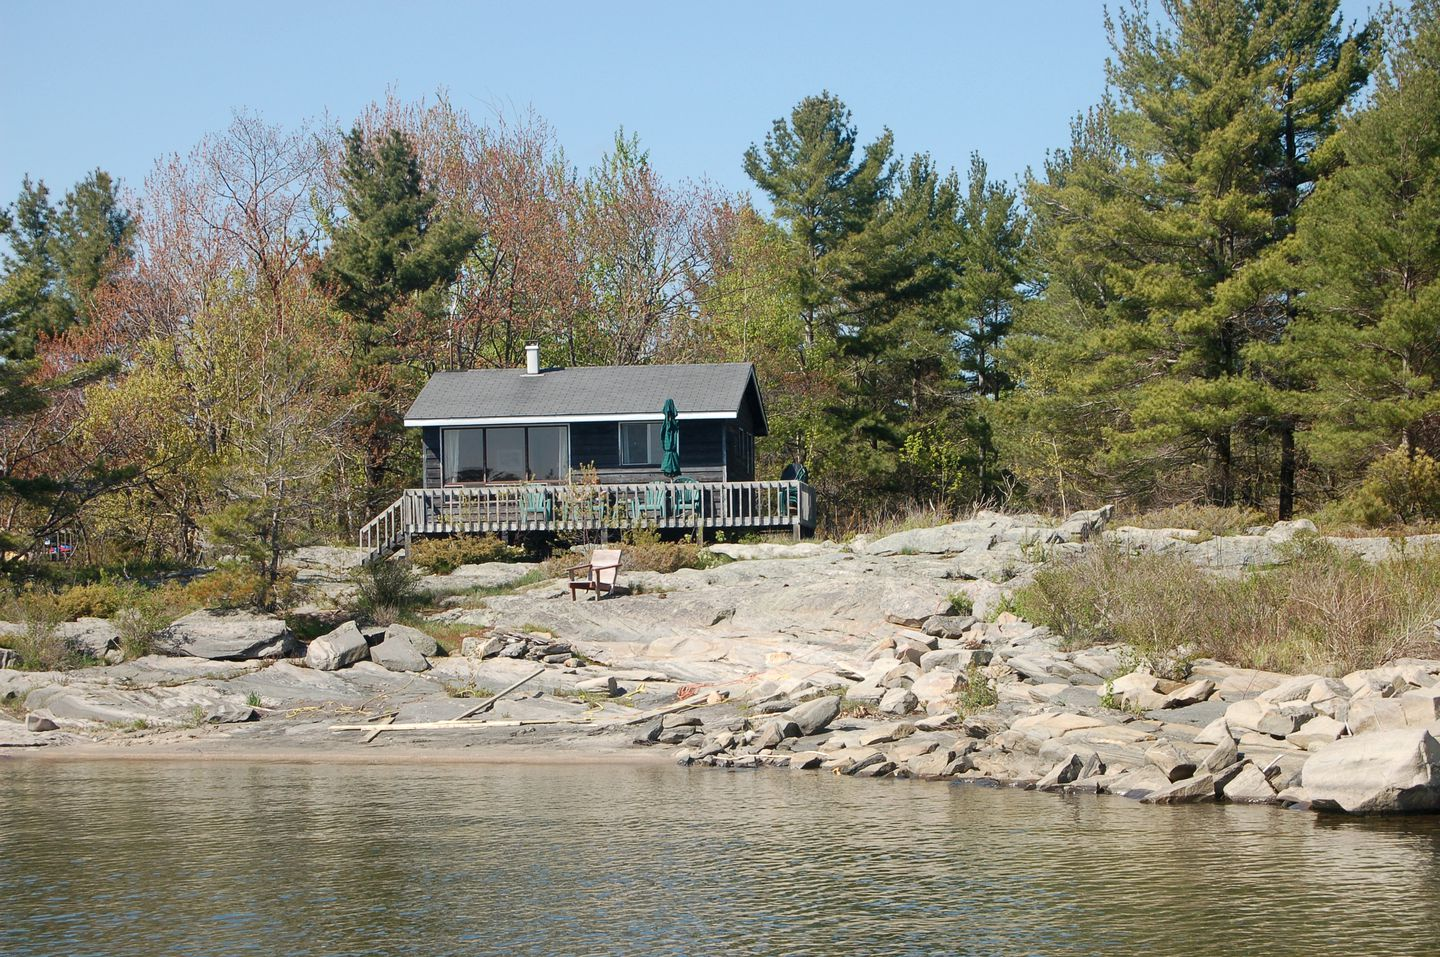 Cottages (Carling, Ontario, Canada)